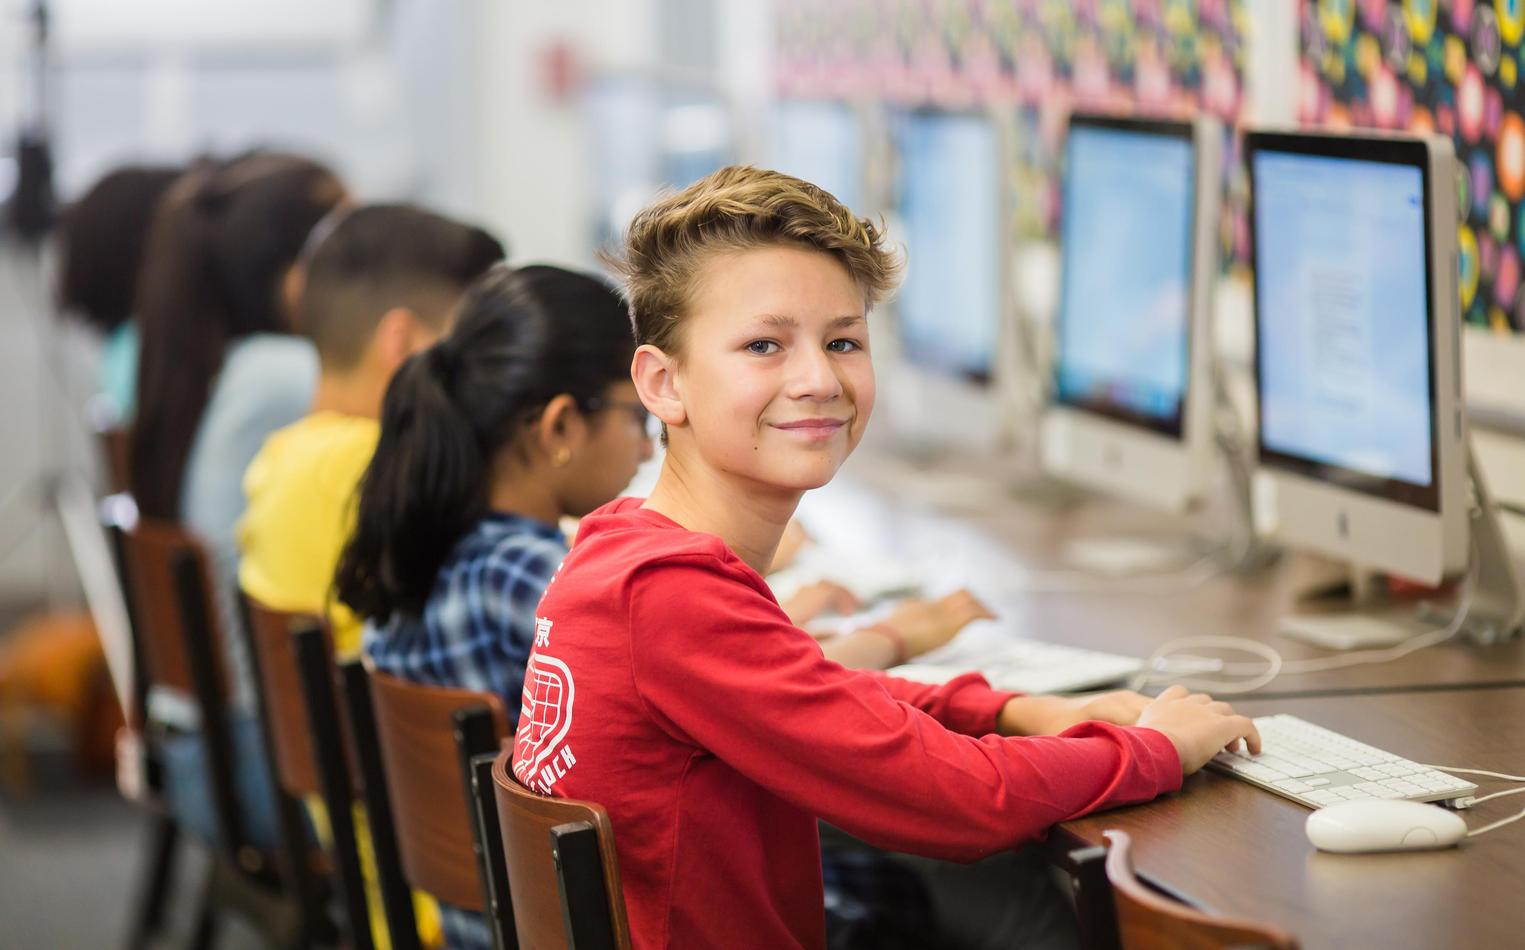 Middle school student at computer in library.